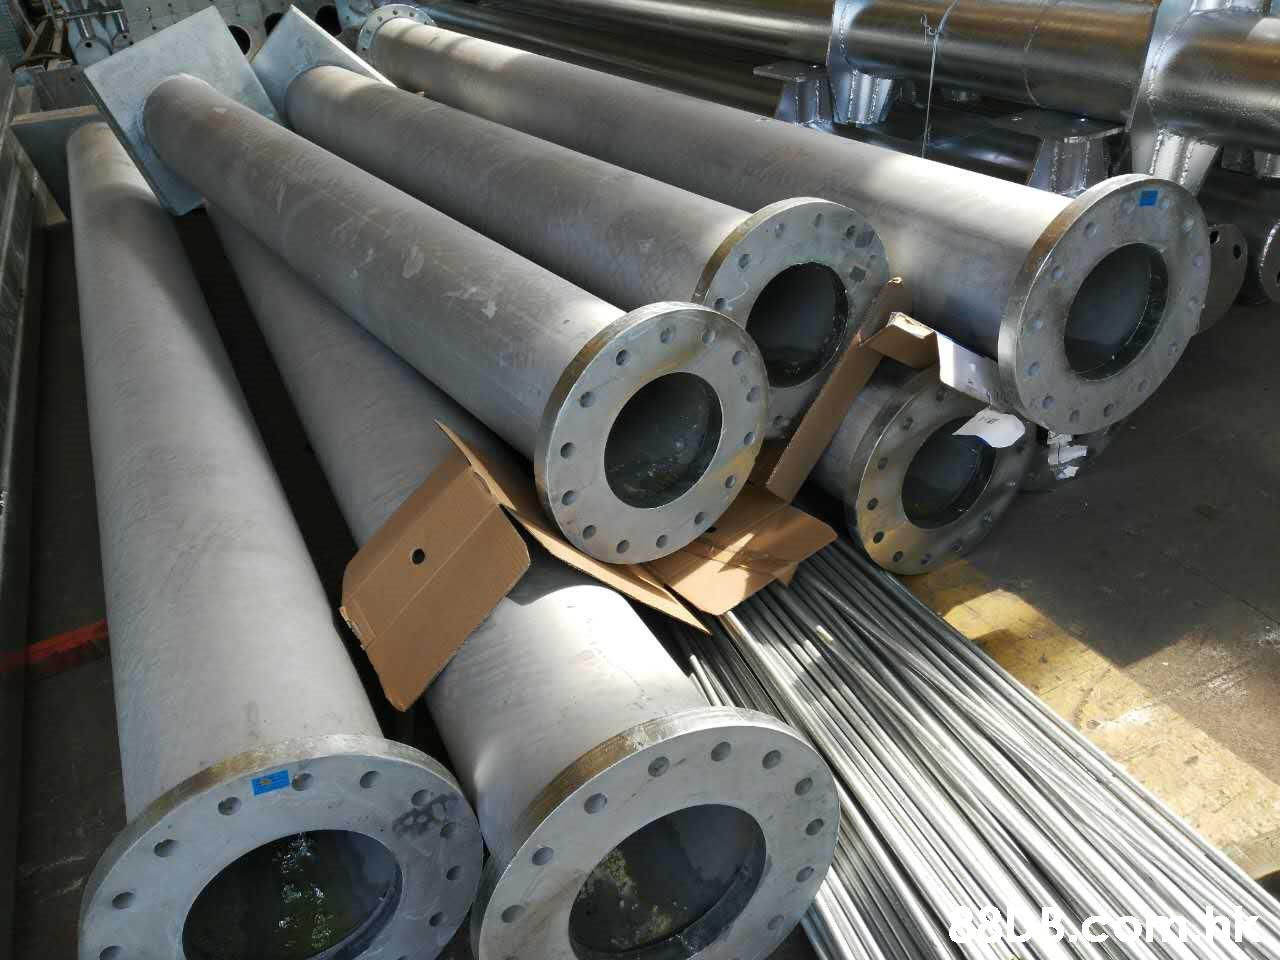 Pipe,Metal,Steel casing pipe,Steel,Plumbing